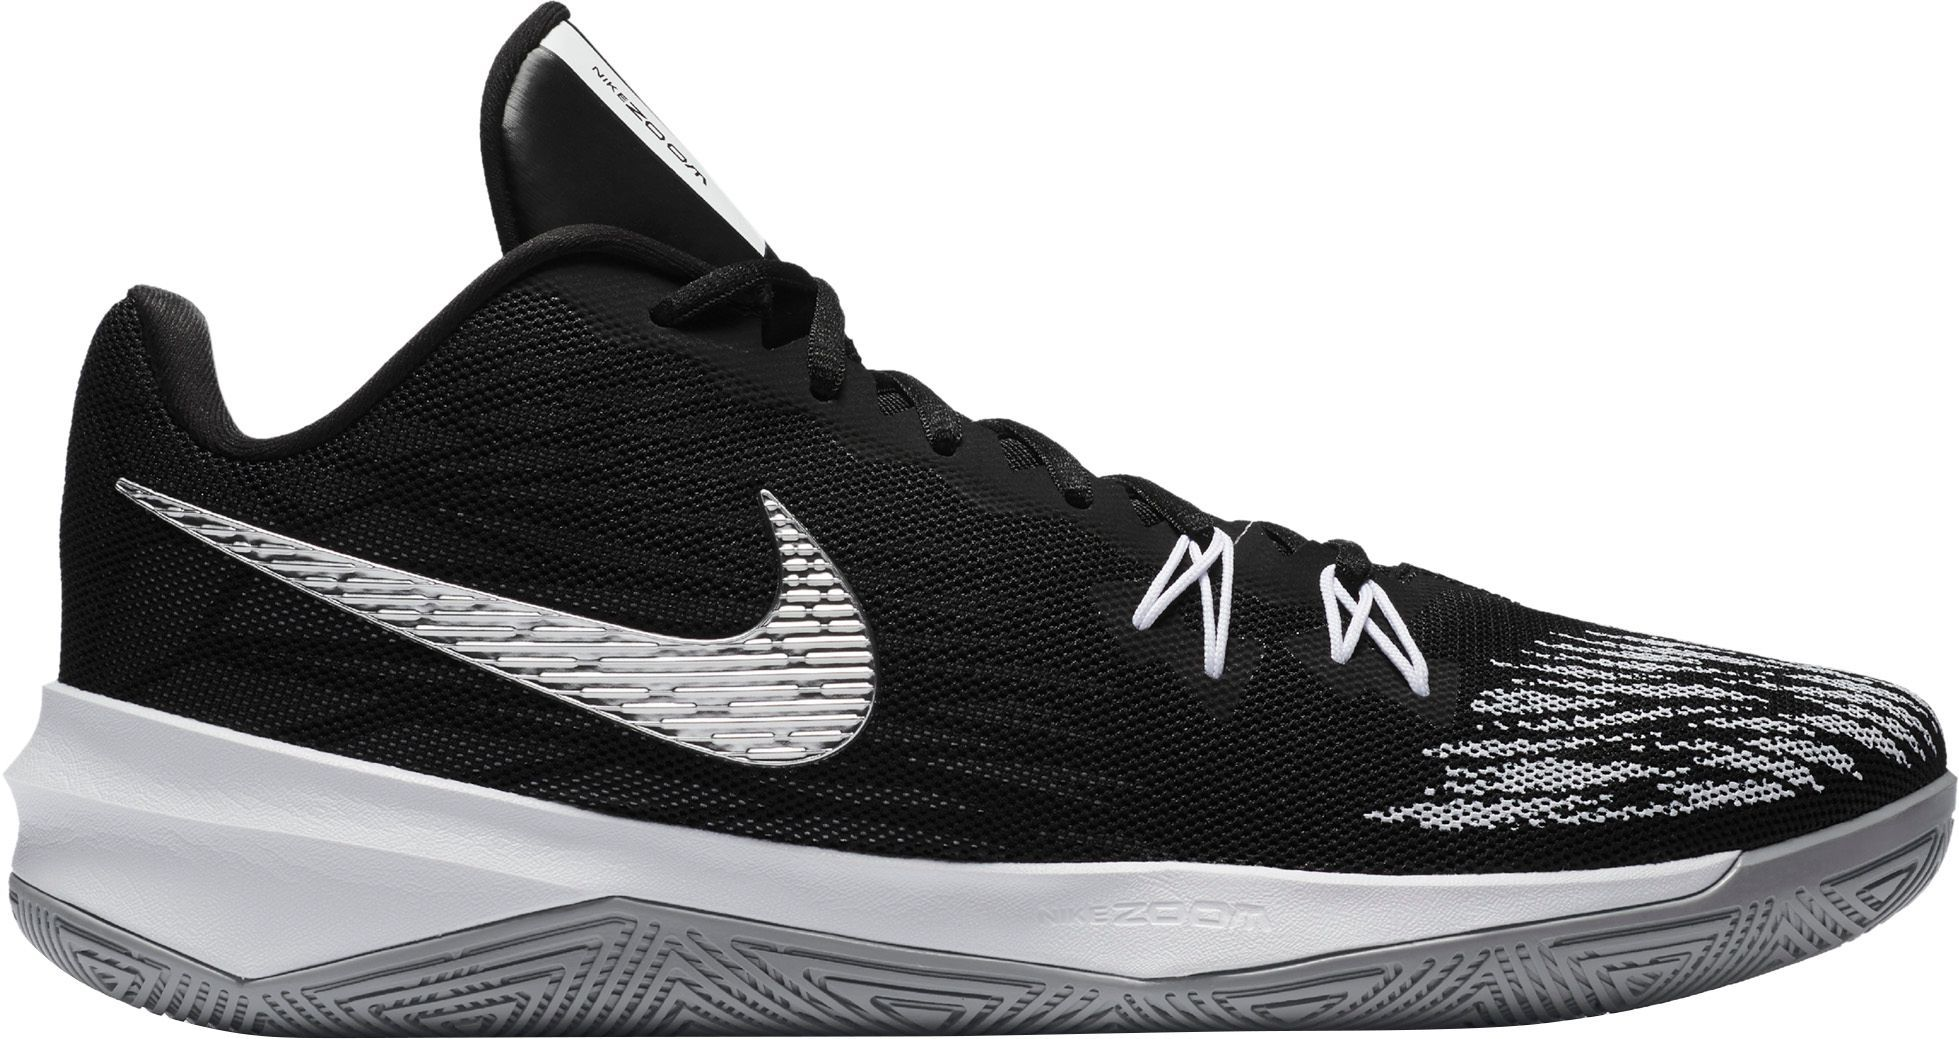 new arrival 872d9 f95f2 Nike Zoom Evidence II Basketball Shoes, Men s, Size  M14 W15.5, Black